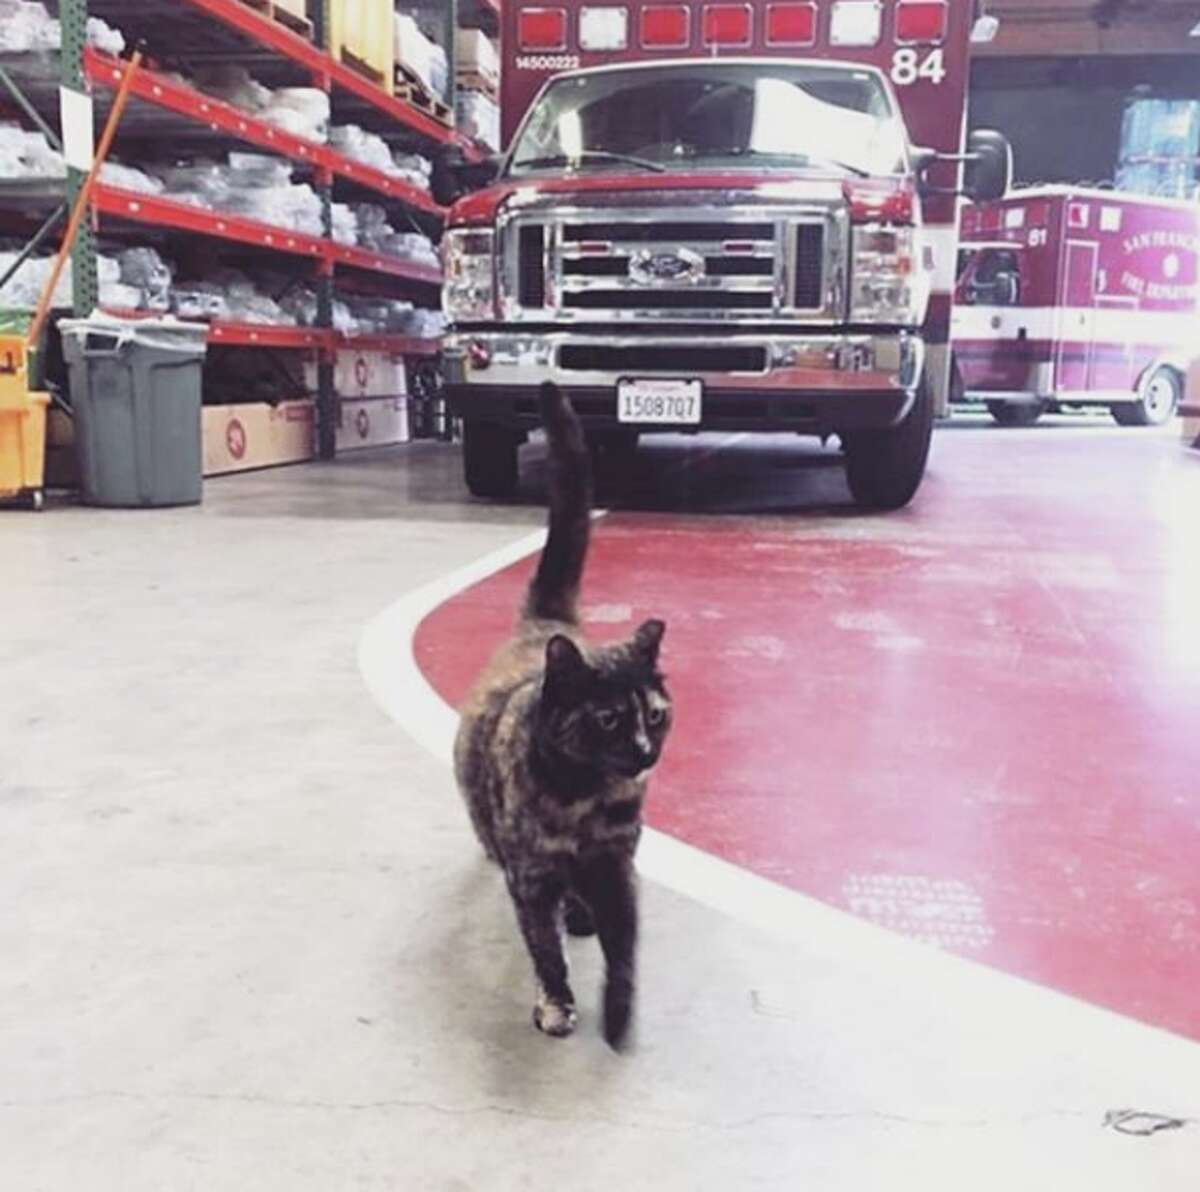 The employees at San Francisco Fire Department Station 49 say they are being asked to get rid of their cat, Edna, after an anonymous complaint was made. Those at Station 49 argue that the cat is a stress reliever, and have launched a social media campaign dubbed #ednastays in hopes that Edna will be allowed at the station.